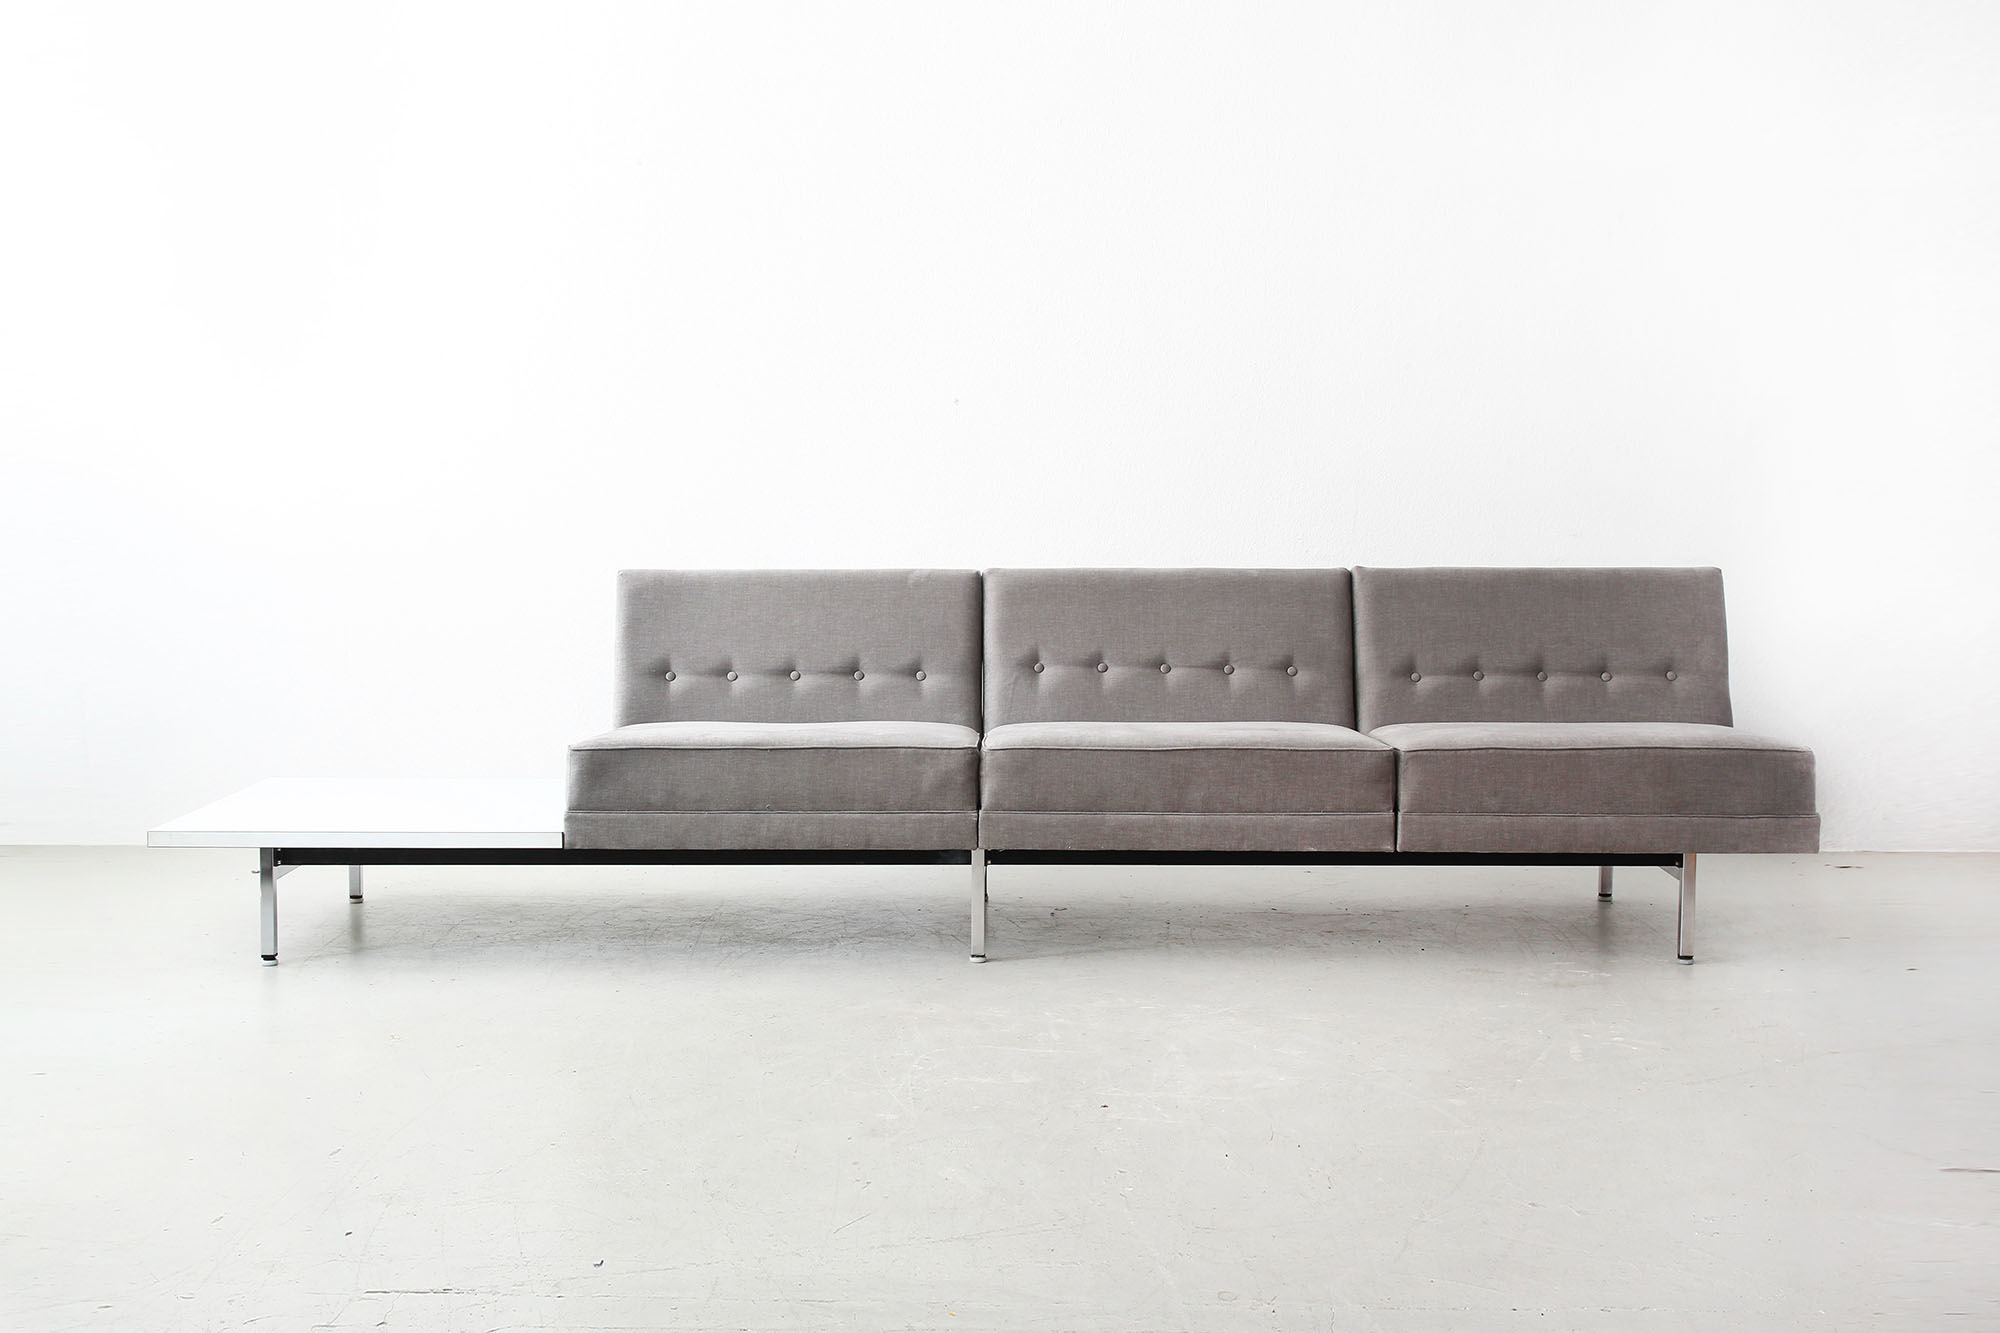 galerie bachmann modular system sofa by george nelson. Black Bedroom Furniture Sets. Home Design Ideas